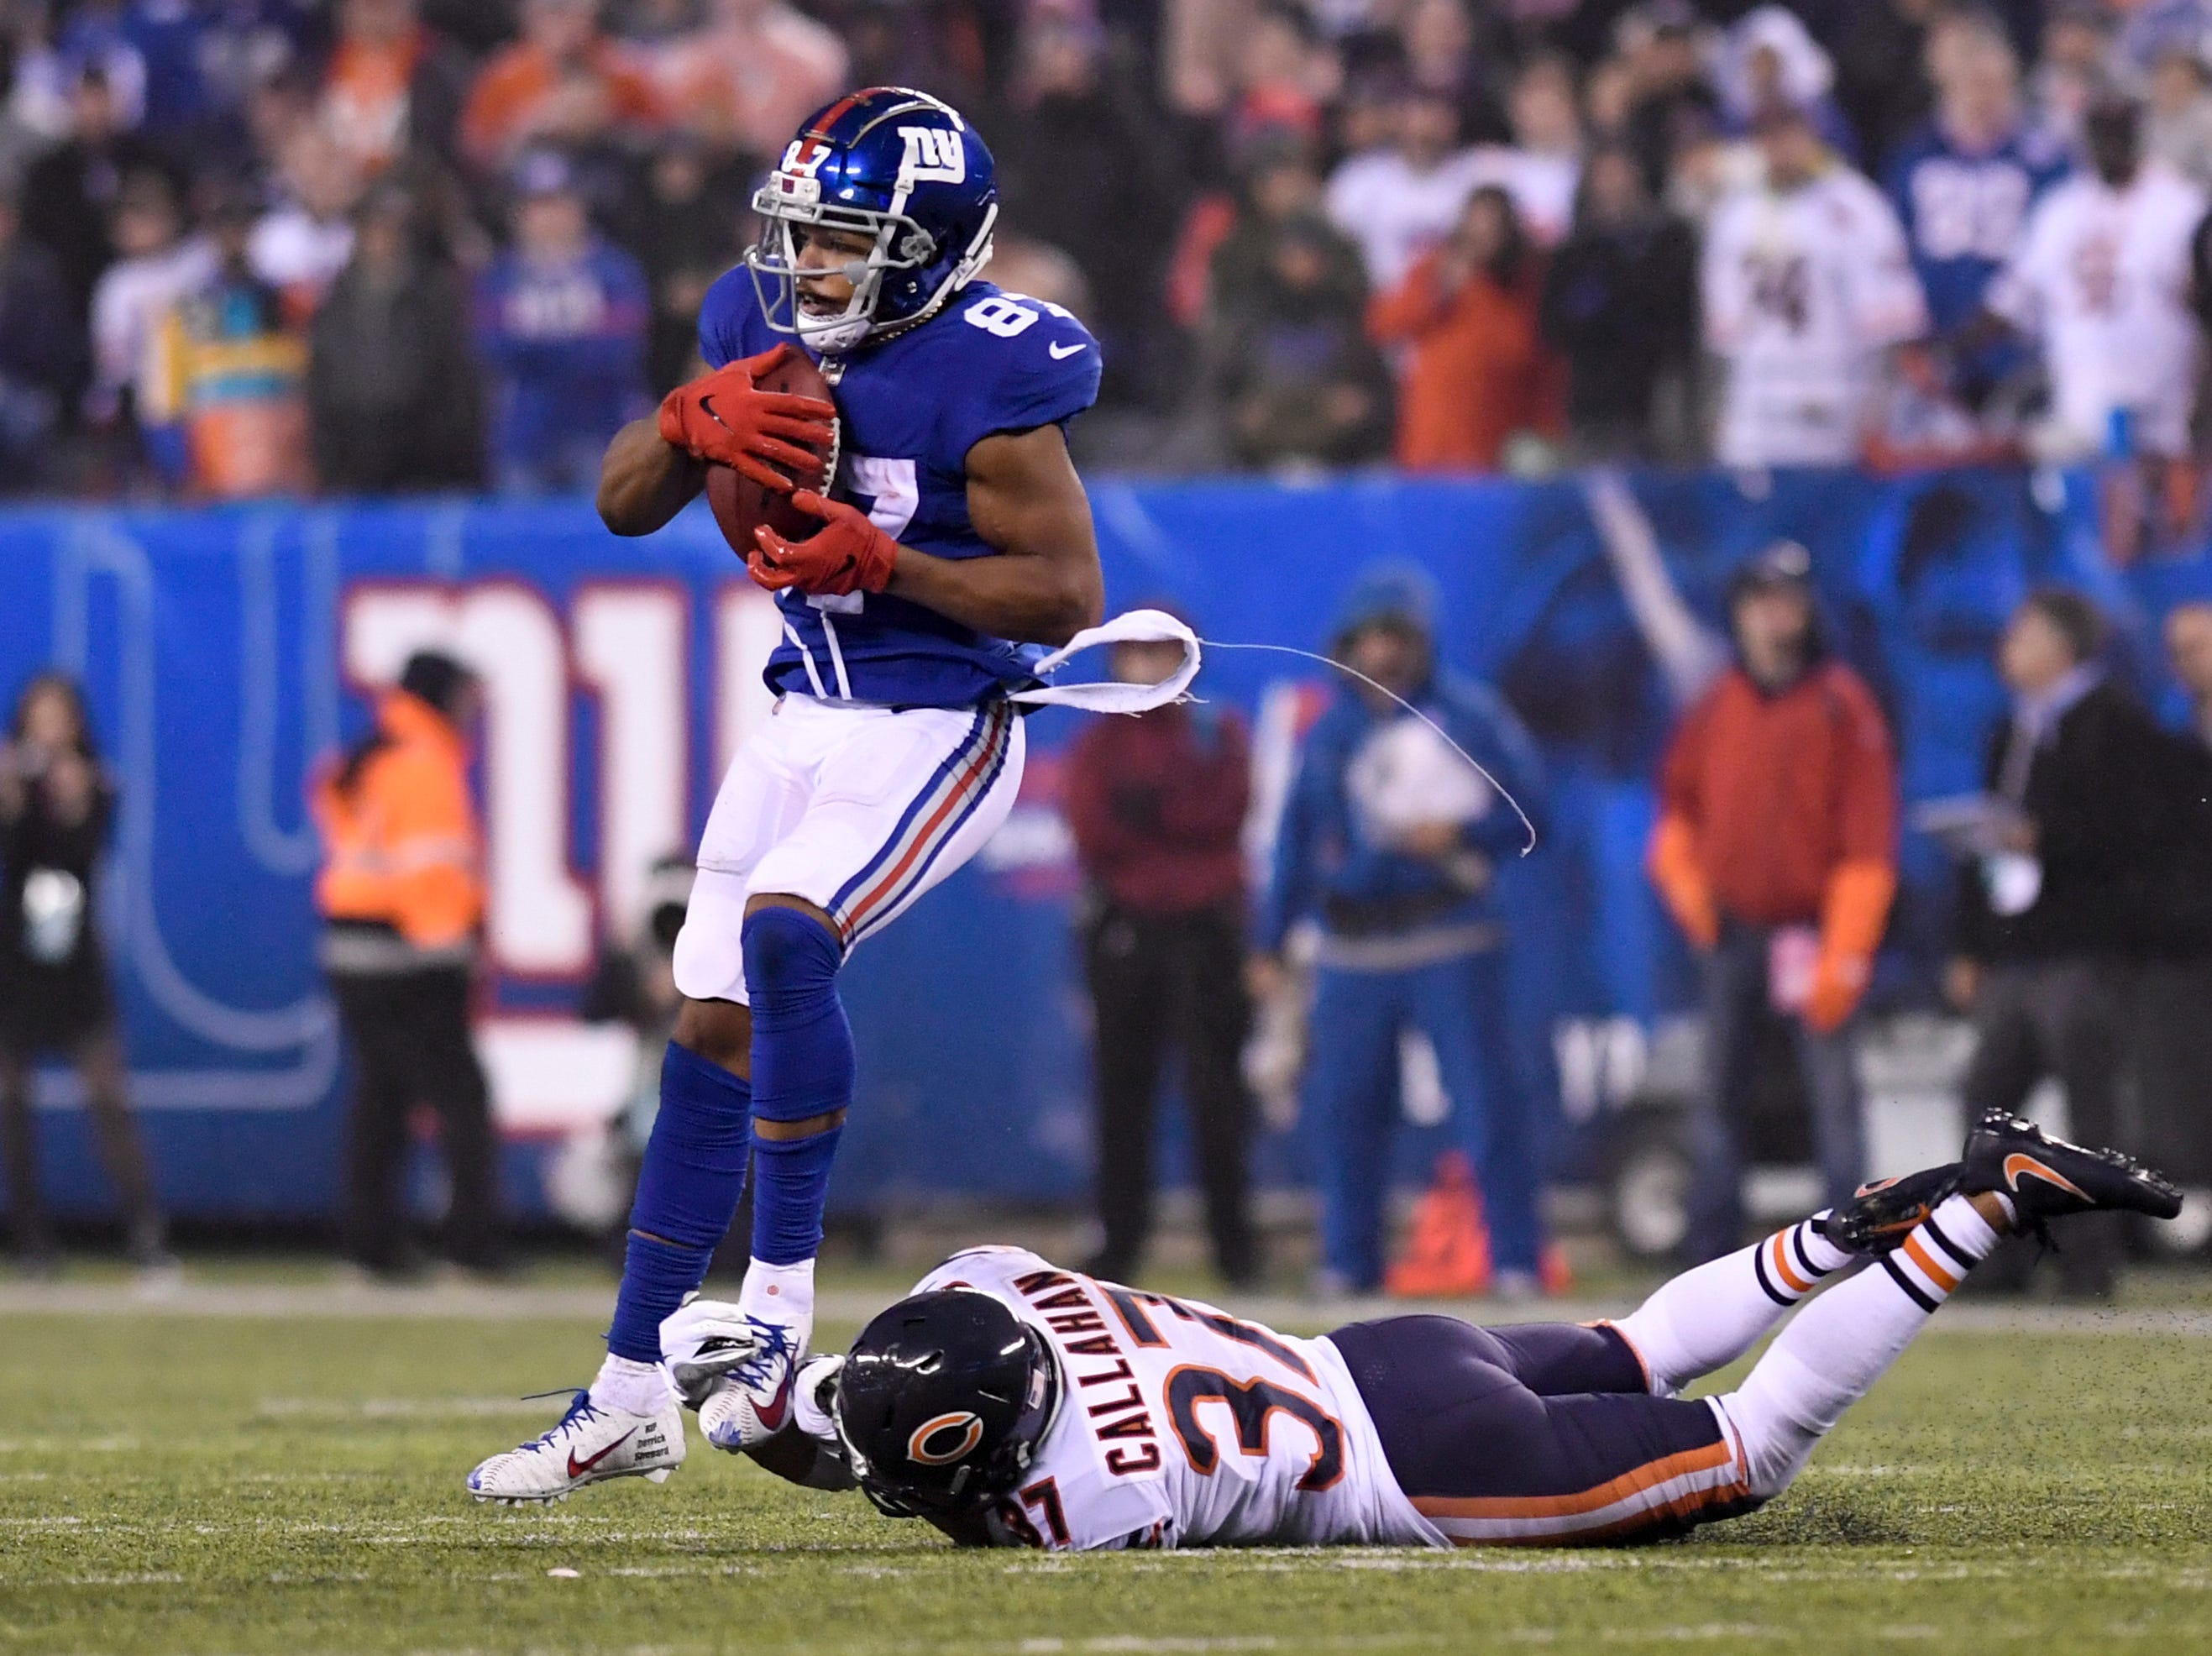 New York Giants wide receiver Sterling Shepard (87) makes a catch over Chicago Bears cornerback Bryce Callahan (37) in the second half. The New York Giants defeat the Chicago Bears in overtime 30-27 on Sunday, Dec. 2, 2018, in East Rutherford.